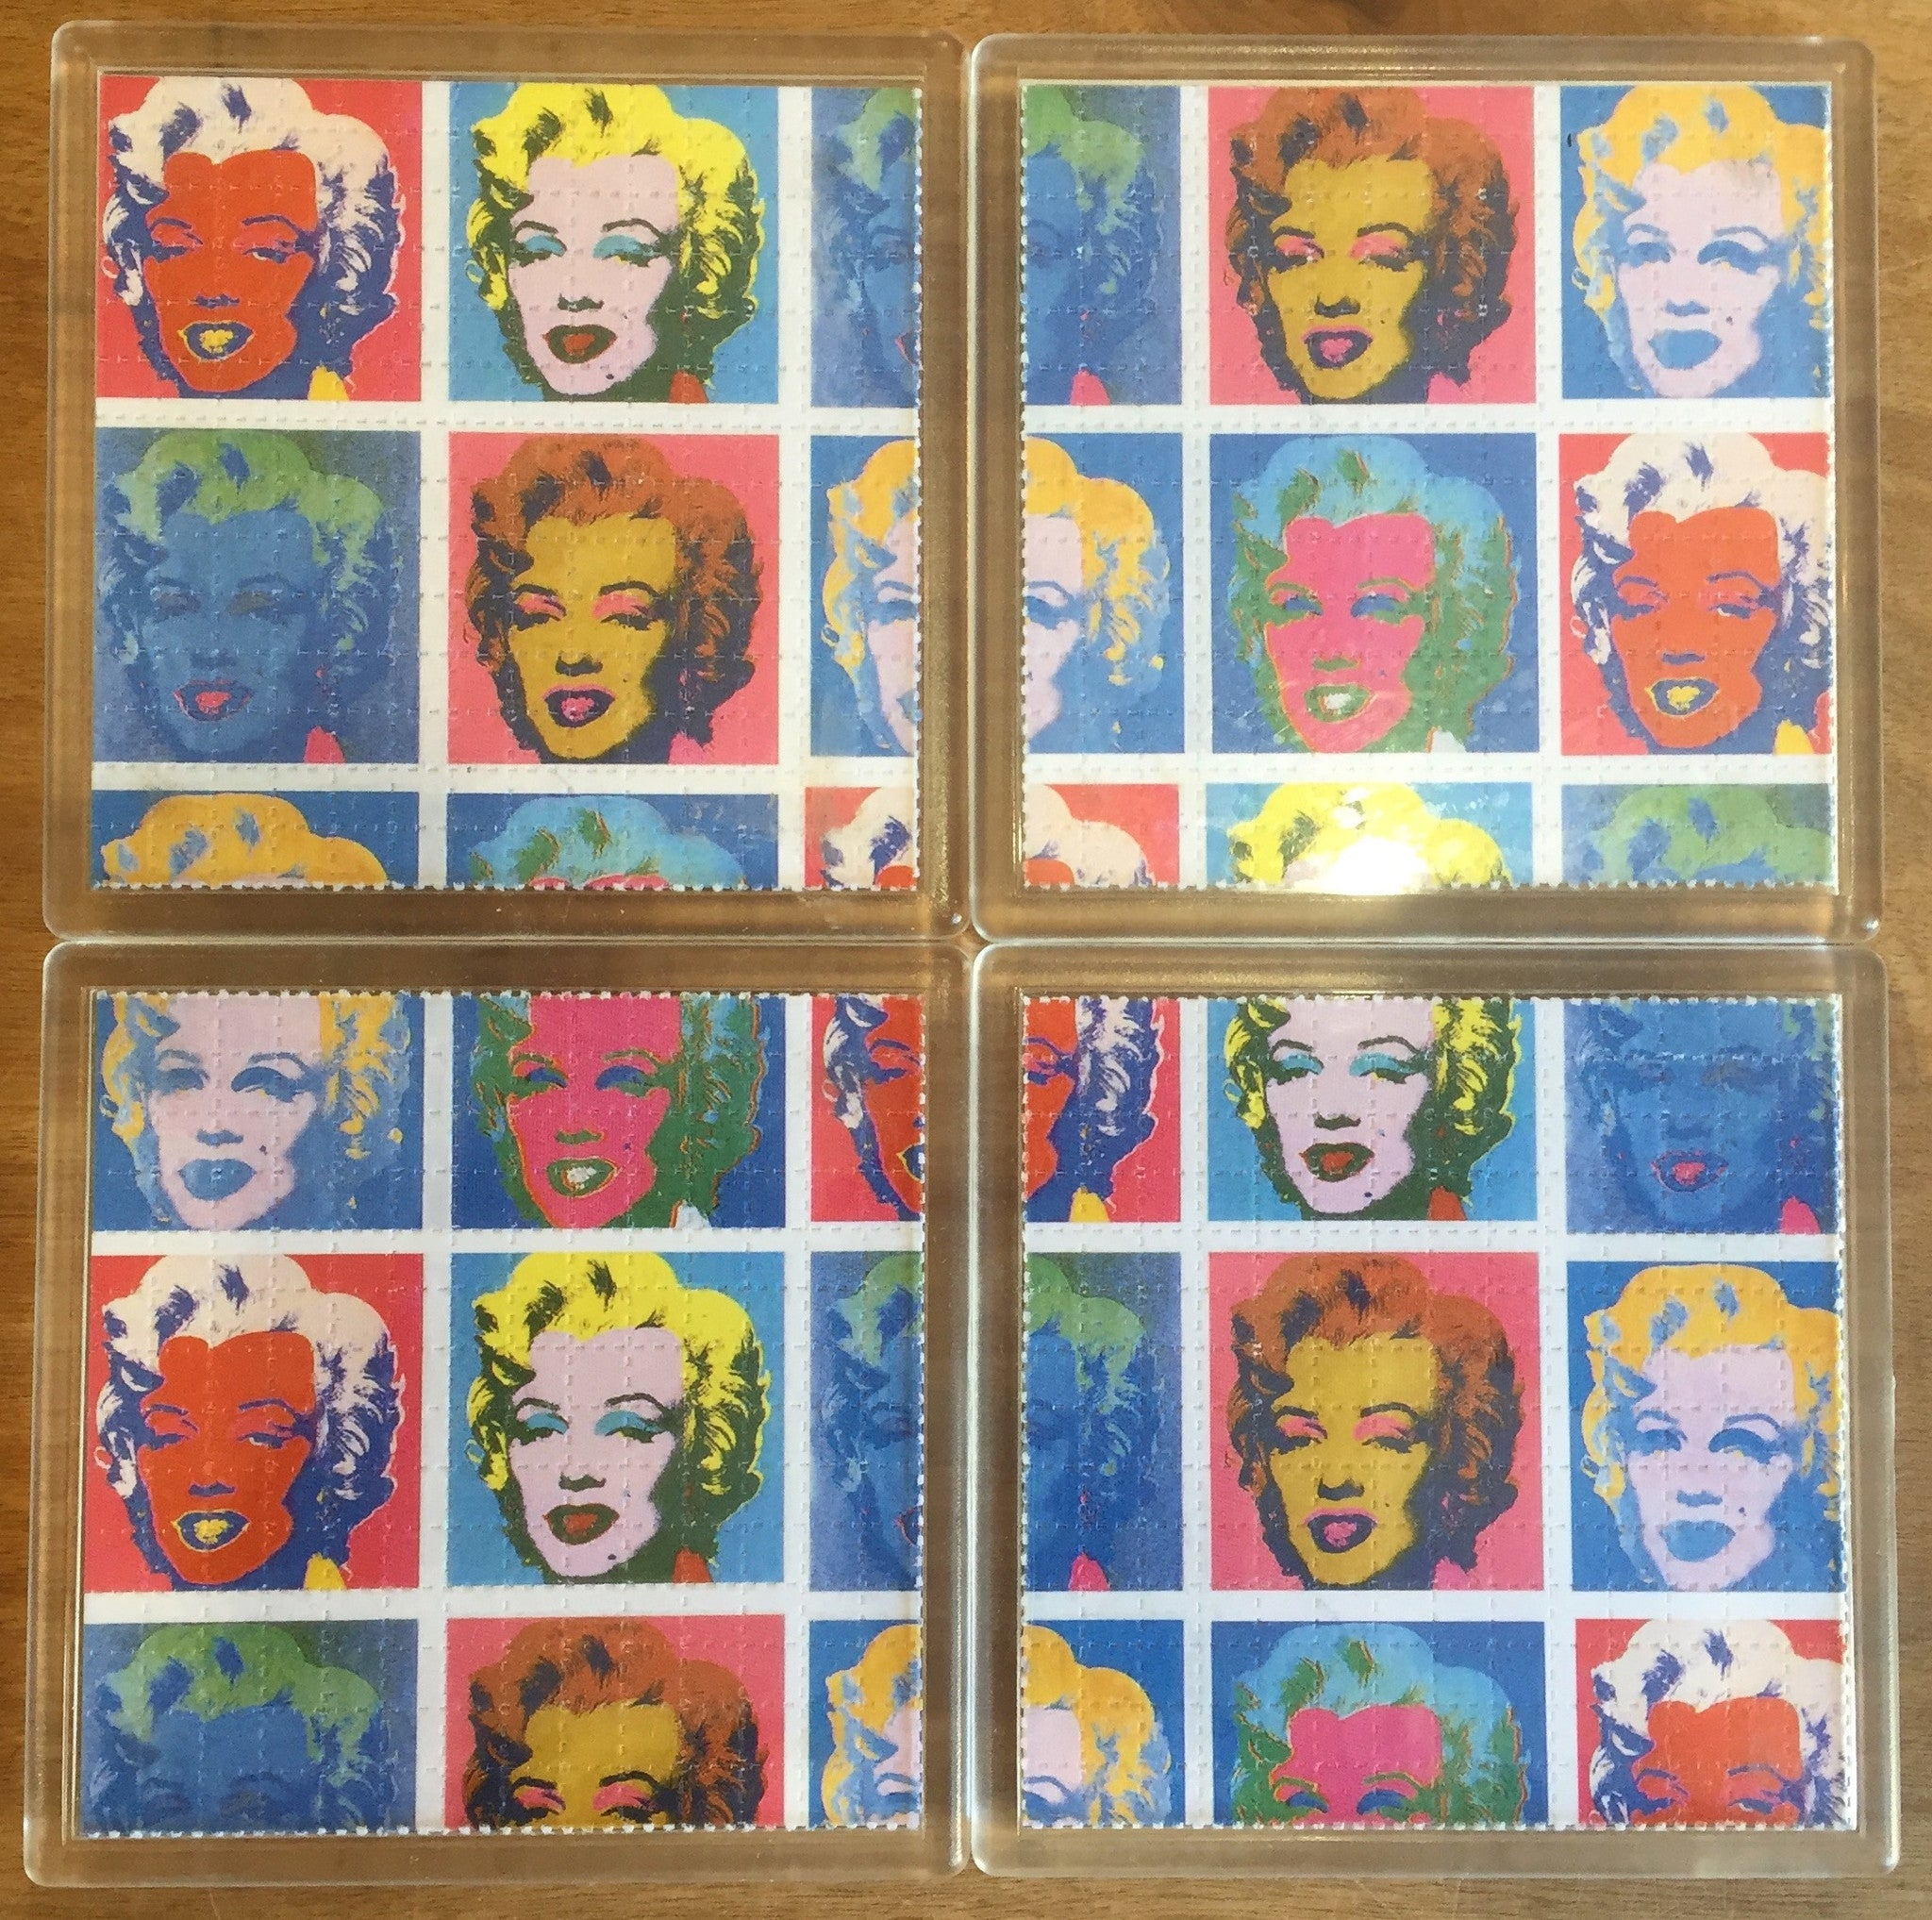 Marilyn Monroe - Psychedelic - Blotter Art - Highly Collectible Artwork Blotter Paper Coaster (4 pack)